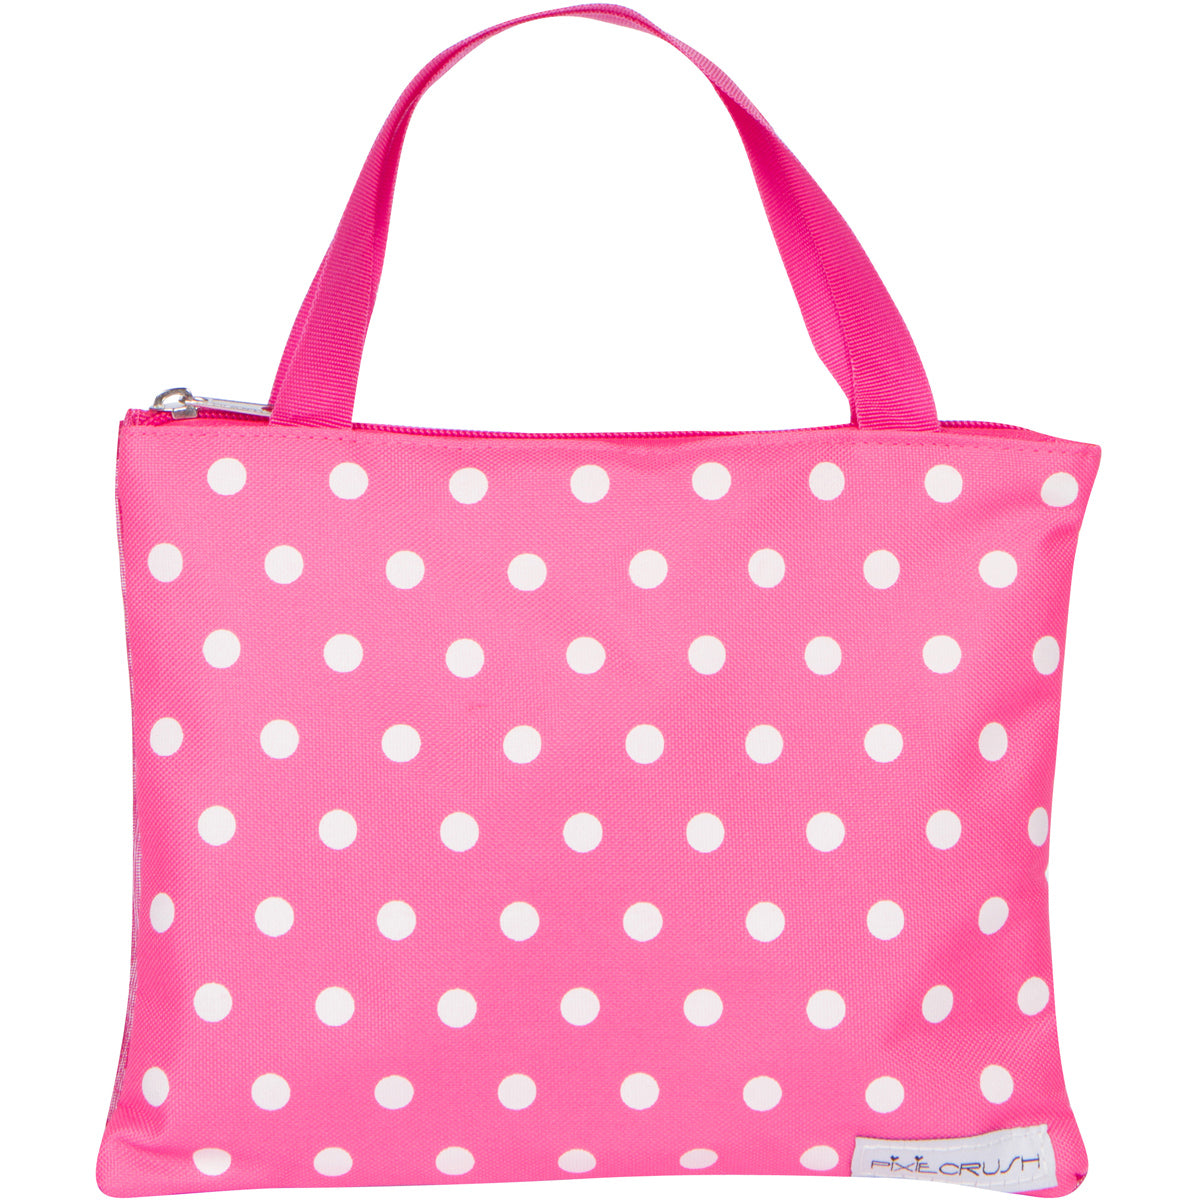 Deluxe Pink Polka Dot Carrying Case